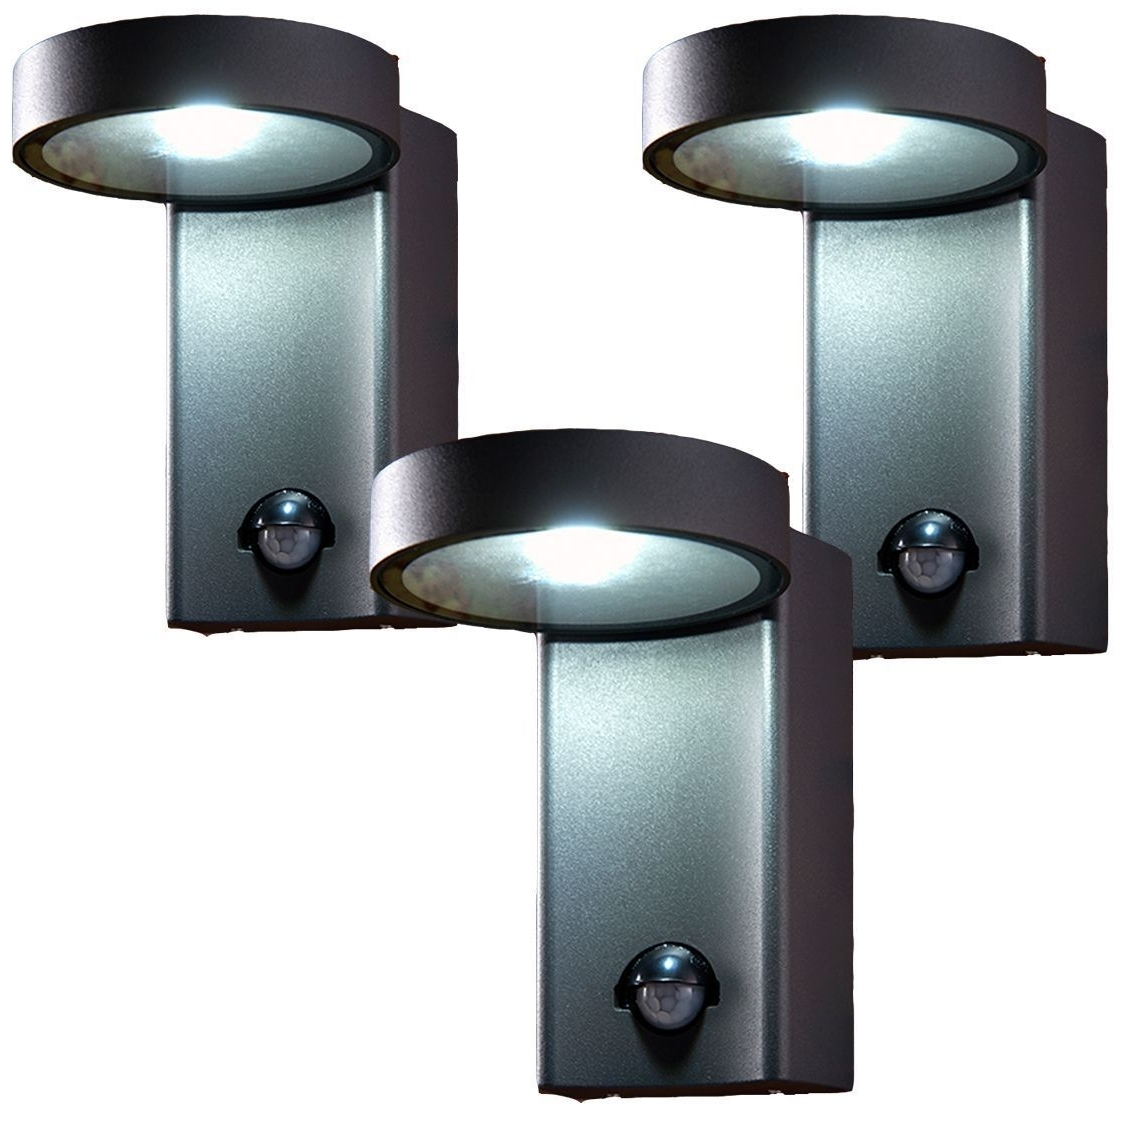 Outdoor Wall Lights With Pir With Fashionable 3 X Saxby 67696 Oreti Pir Dark Matt Anthracite 10W Ip44 Outdoor Wall (View 14 of 20)